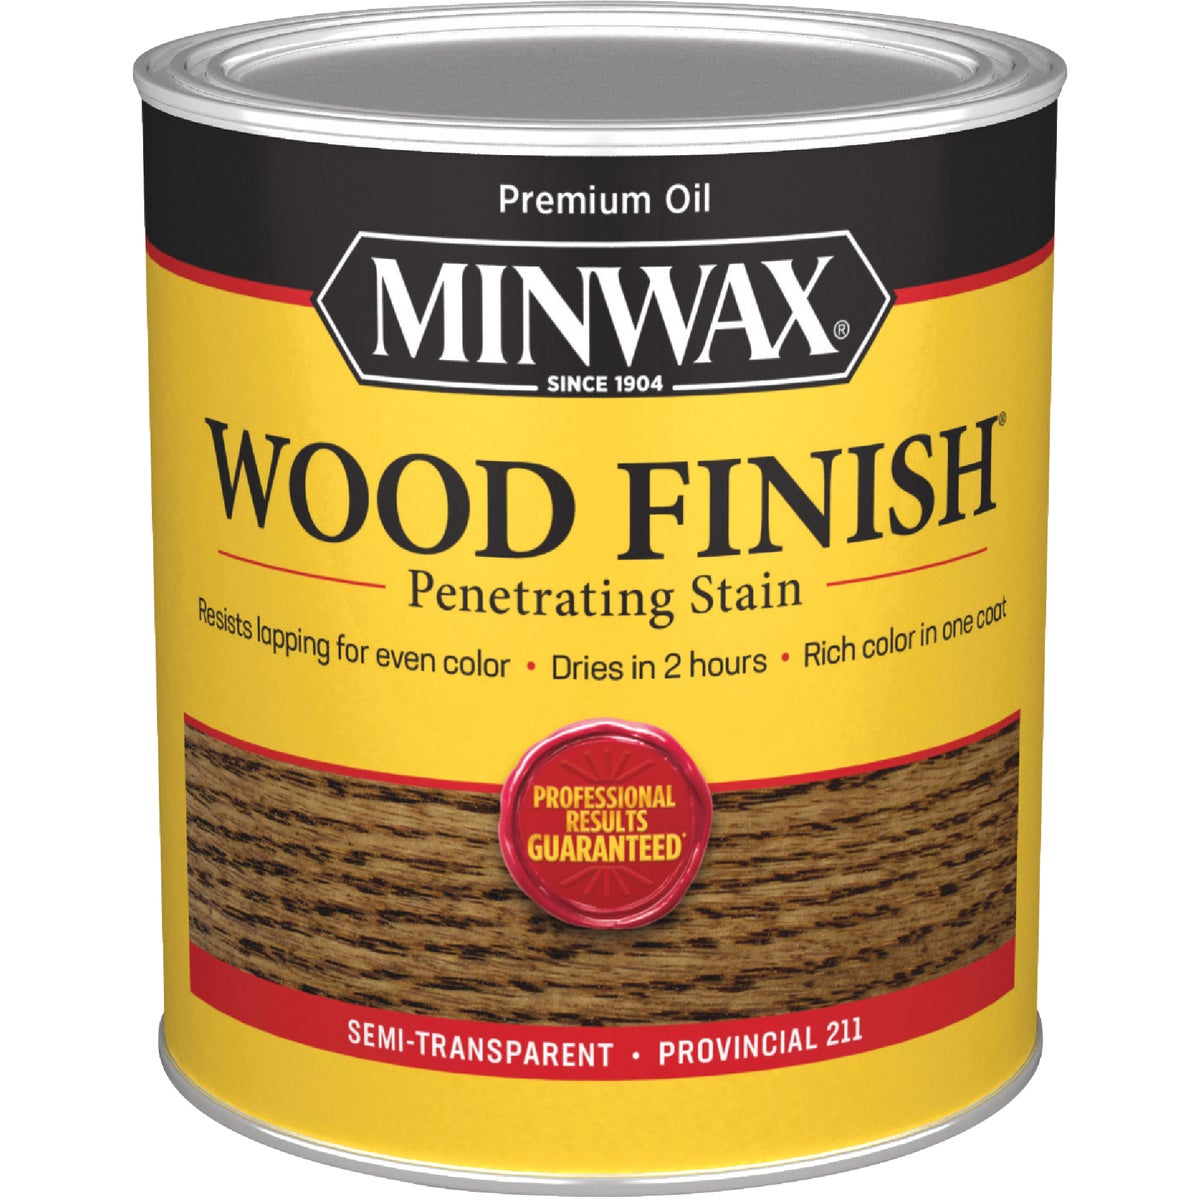 PROVINCIAL WOOD STAIN - 70002 by Minwax Company